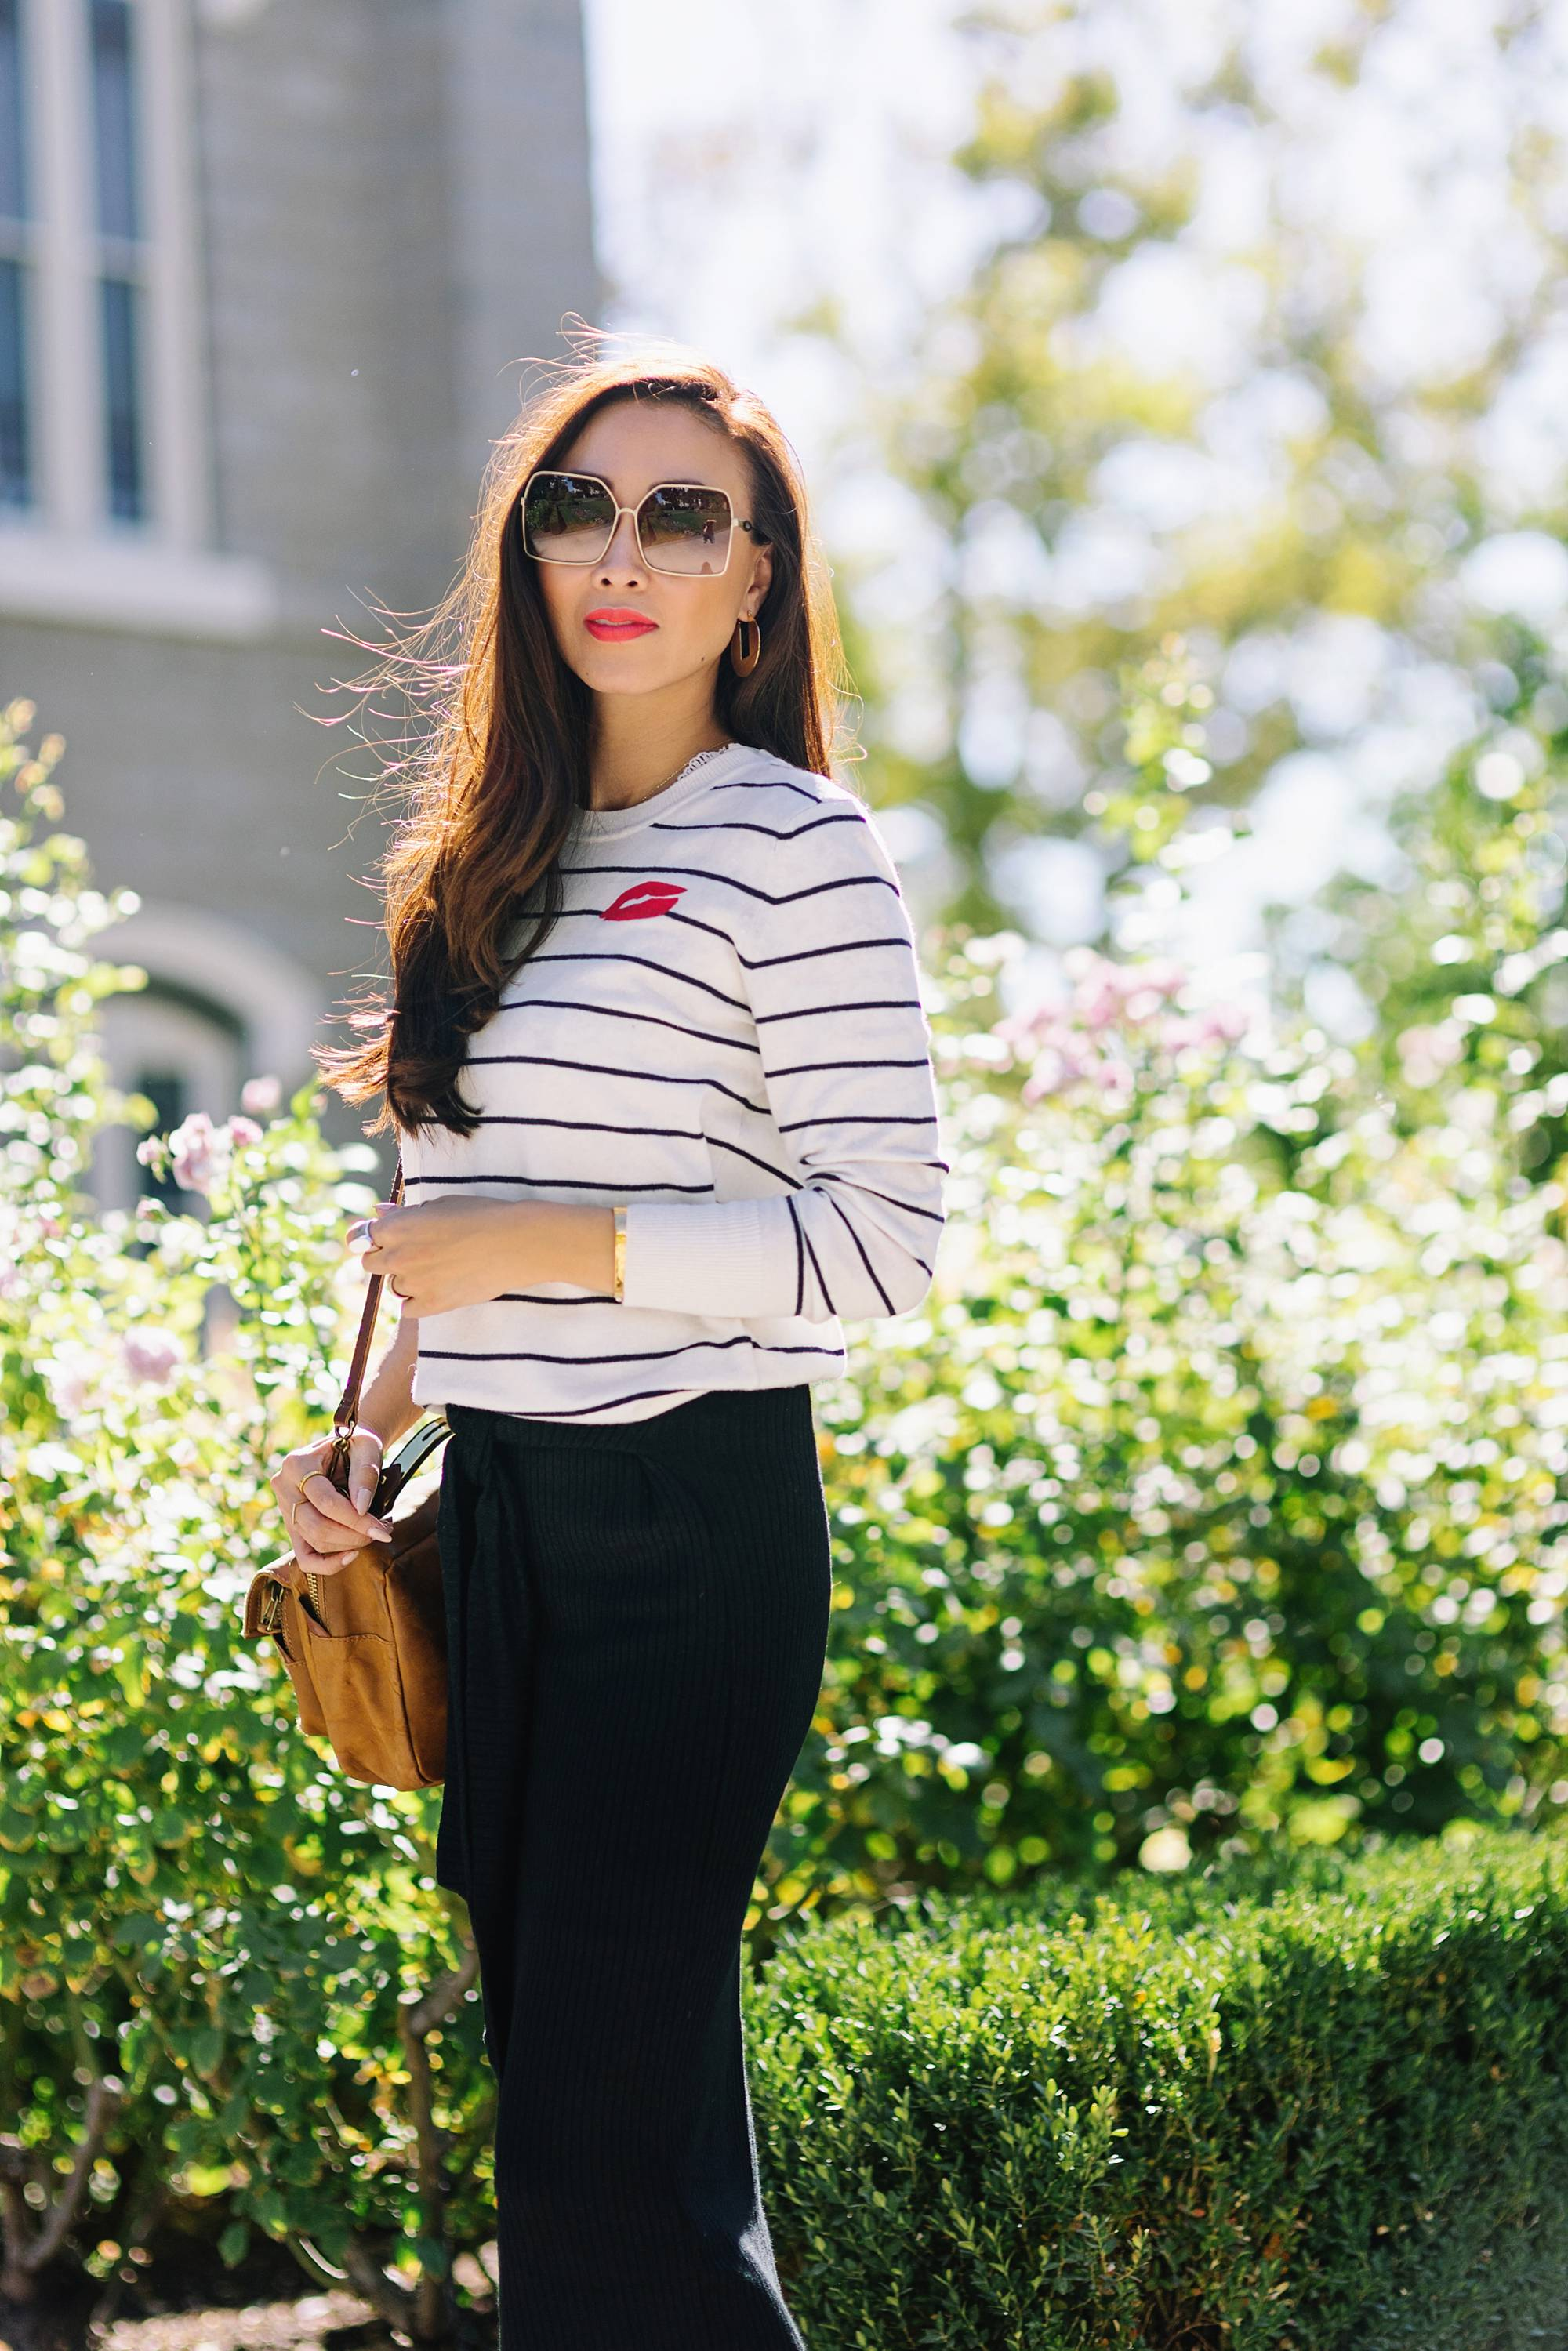 wearing black white stripe sweater banana republic and knit skirt black on lifestyle fashion blogger Diana Elizabeth phoenix arizona and white sneakers red lips from dose of colors coral